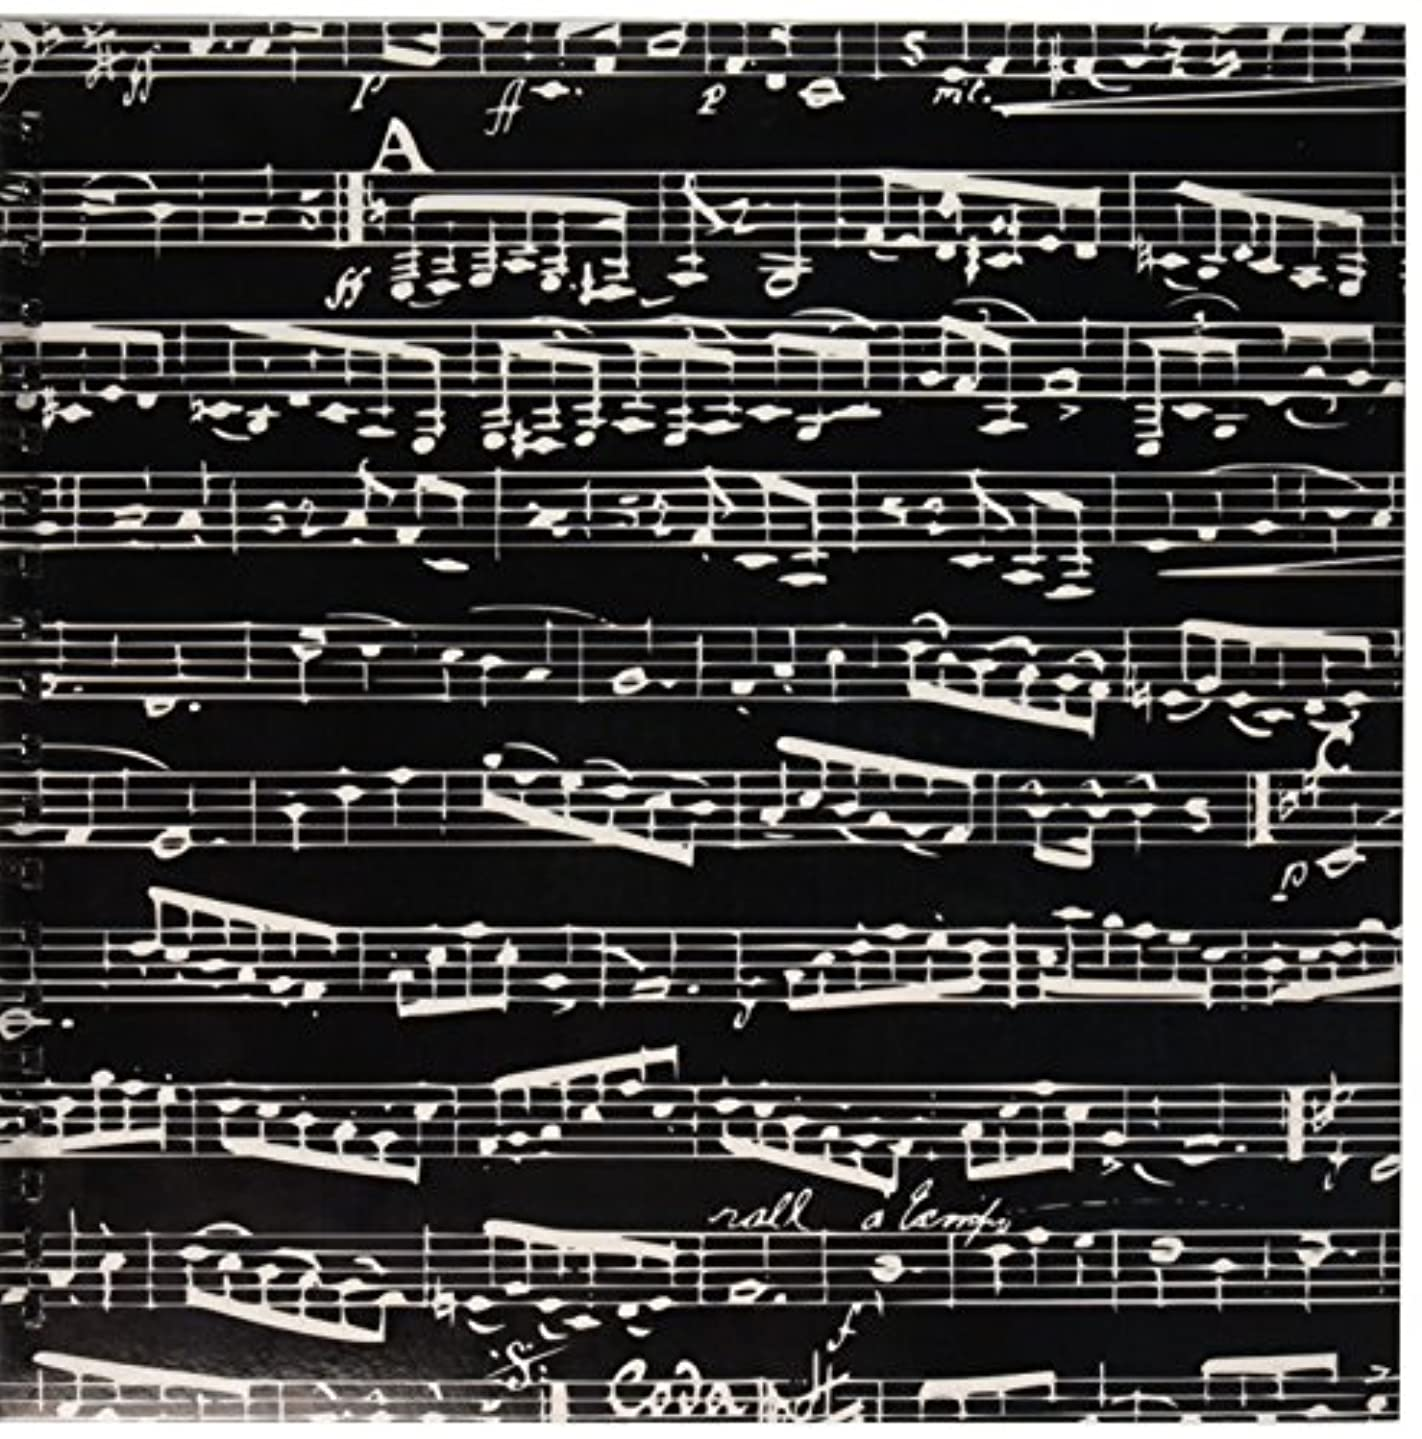 3dRose db_112826_2 Black and White Musical Notes-Stylish Sheet Music-Piano Notation-Contemporary Musician Gifts-Memory Book, 12 by 12-Inch